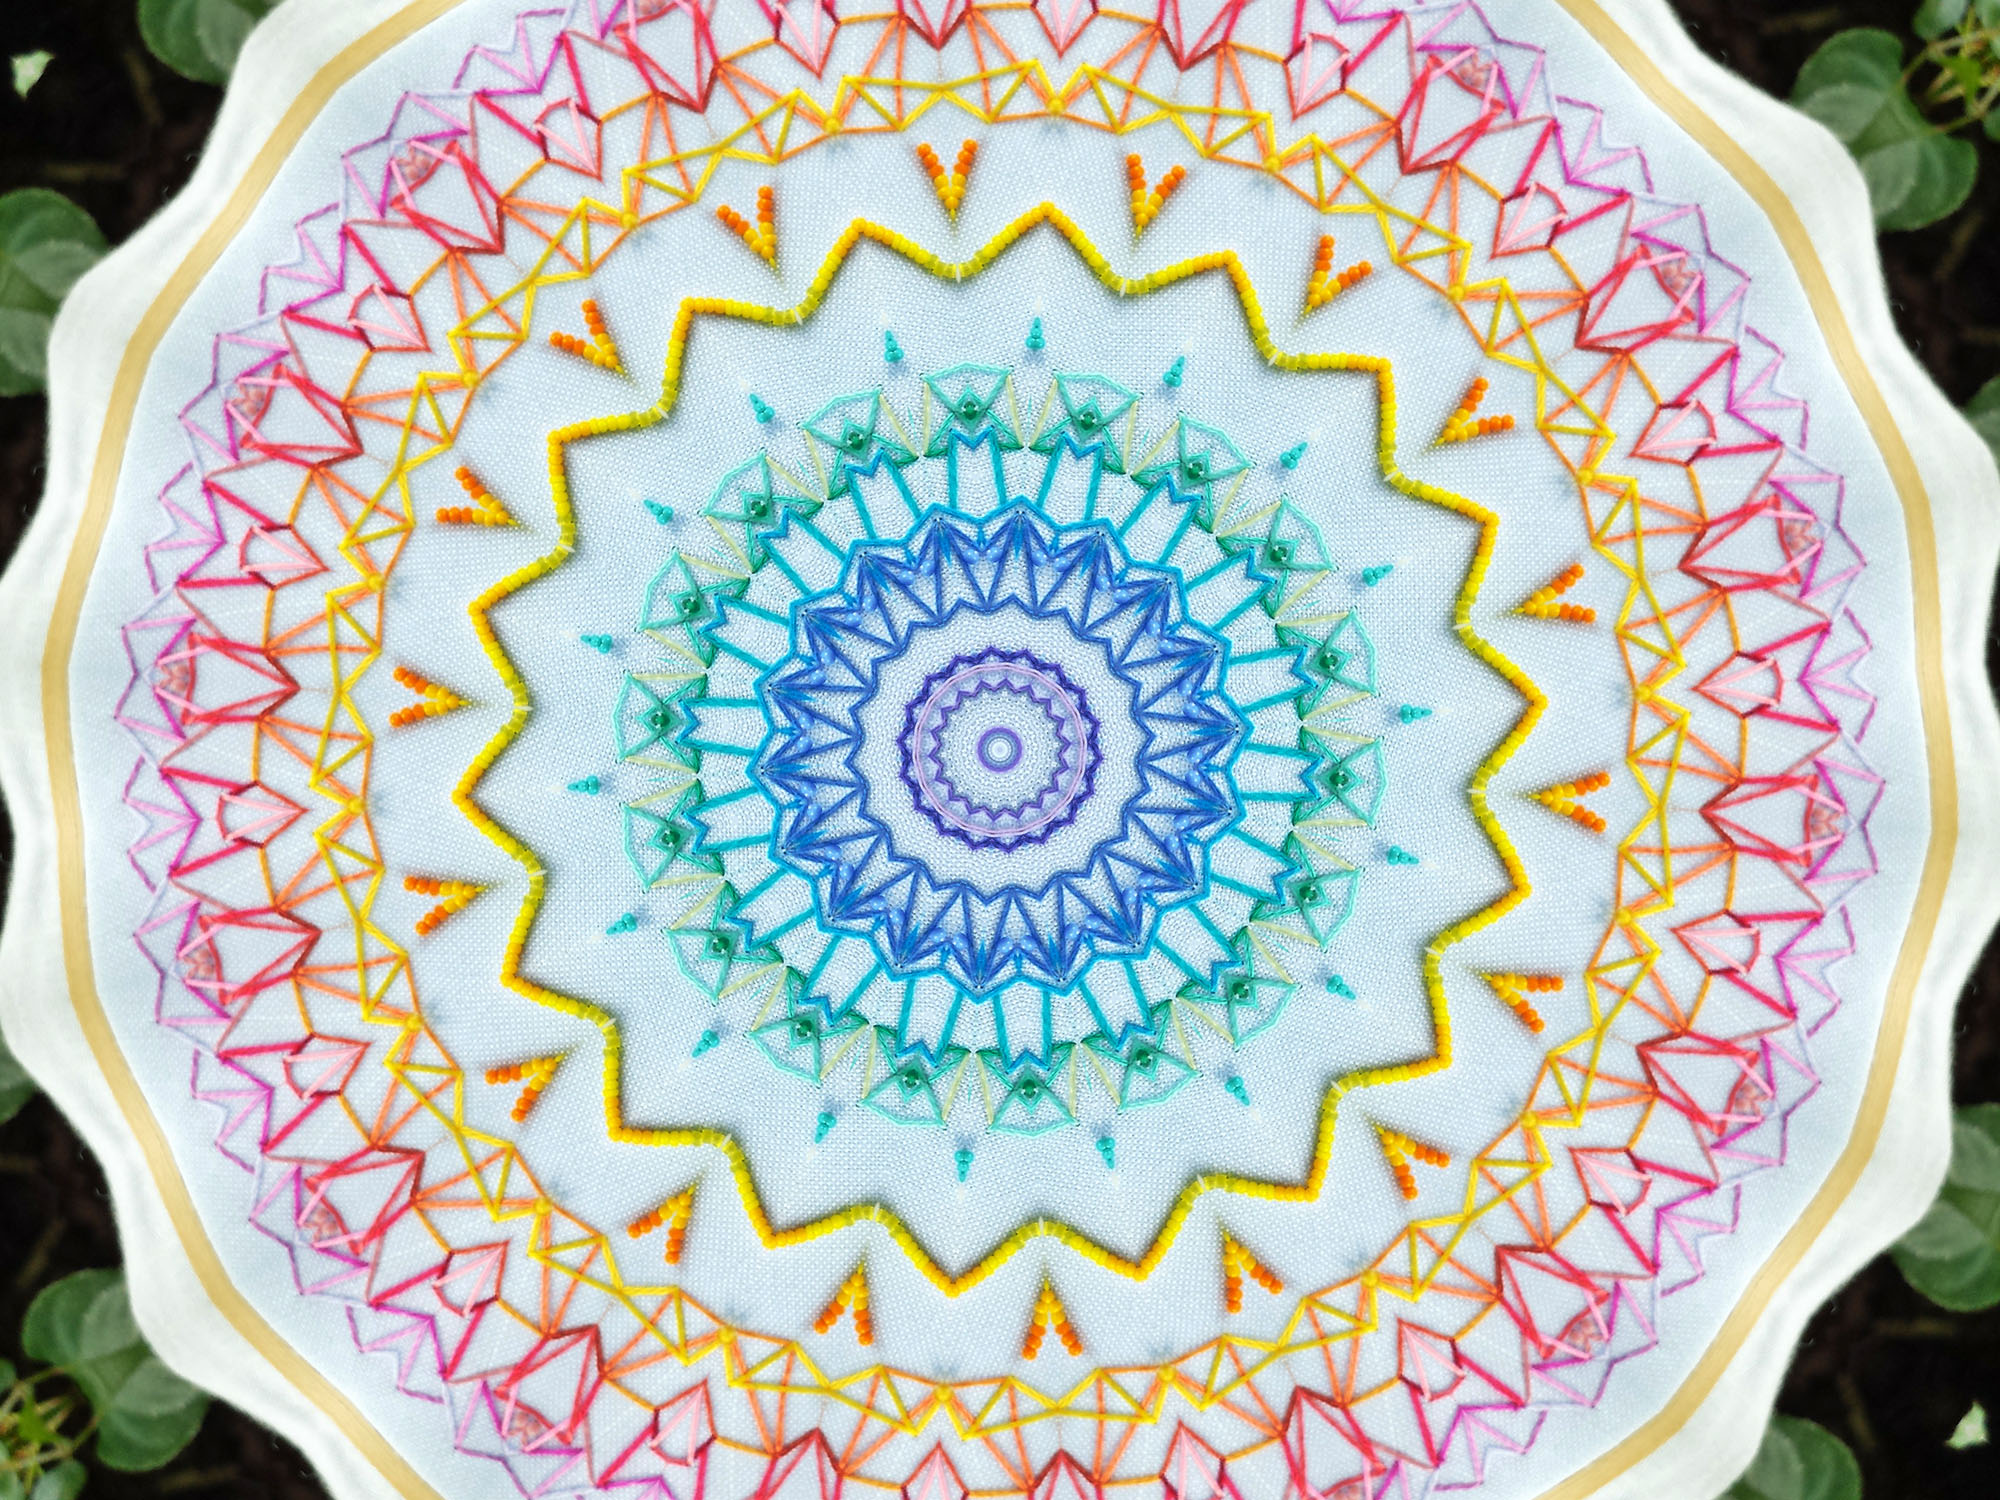 Rainbow embroidered mandala